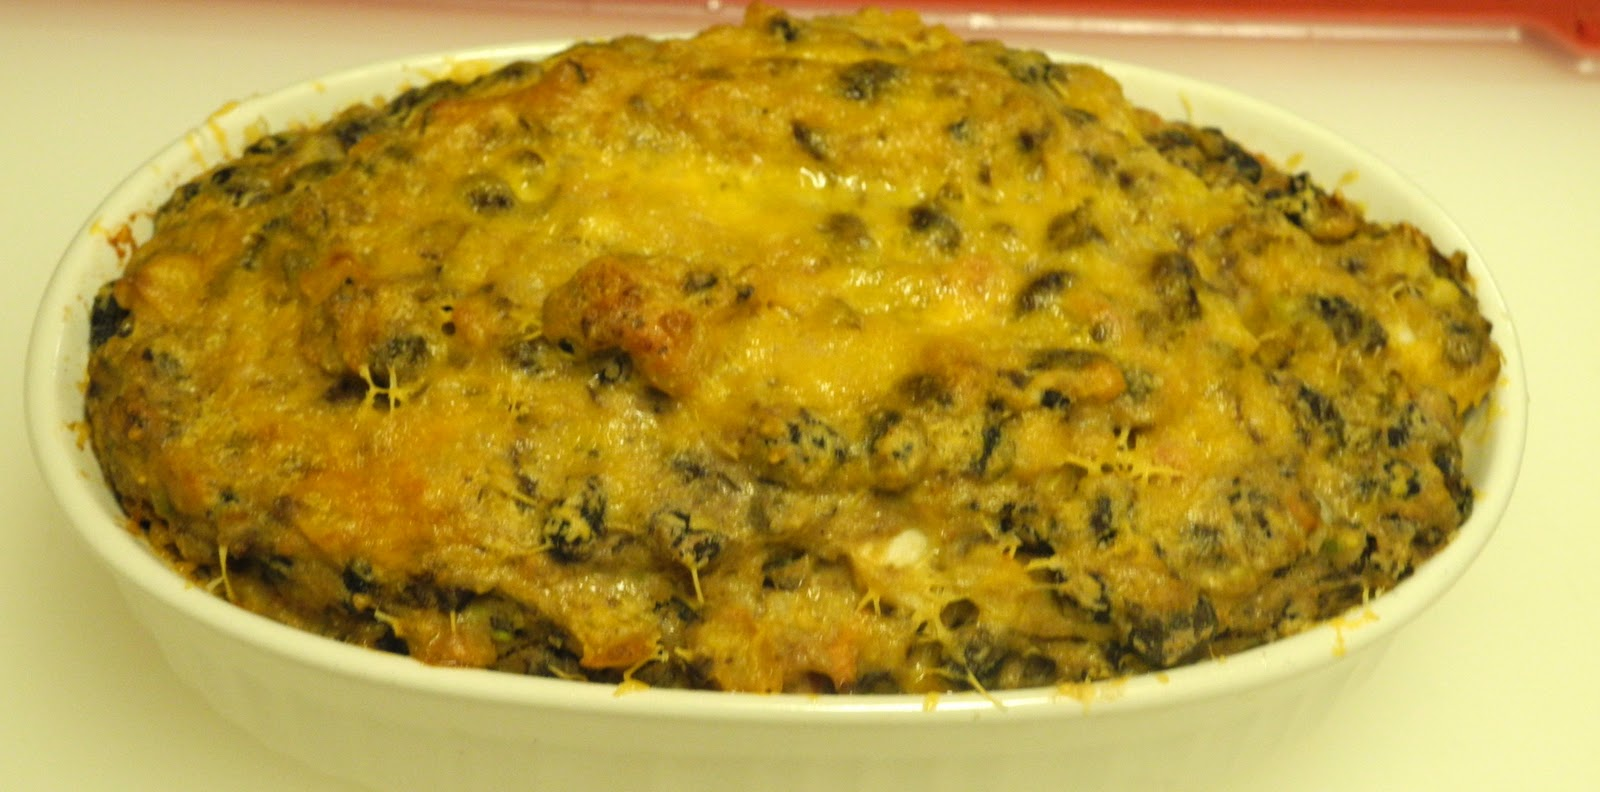 ... of the veggies copies of this Cream Cheese Vegetable Casserole